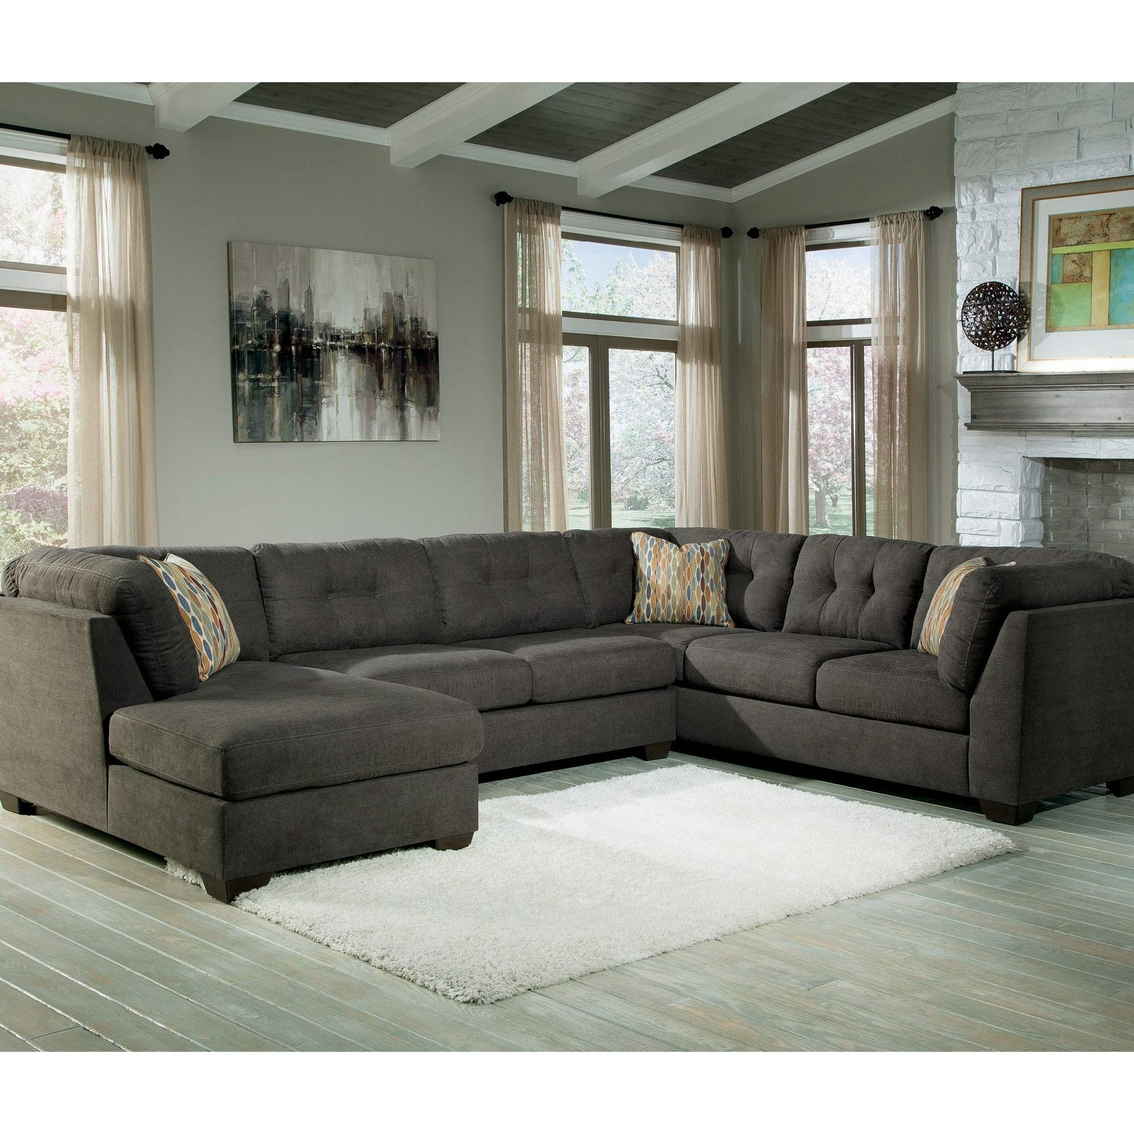 Norfolk Grey 6 Piece Sectionals With Laf Chaise With 2019 Benchcraft Delta City 3 Pc. Sectional Sofa With Raf Chaise (Gallery 16 of 20)